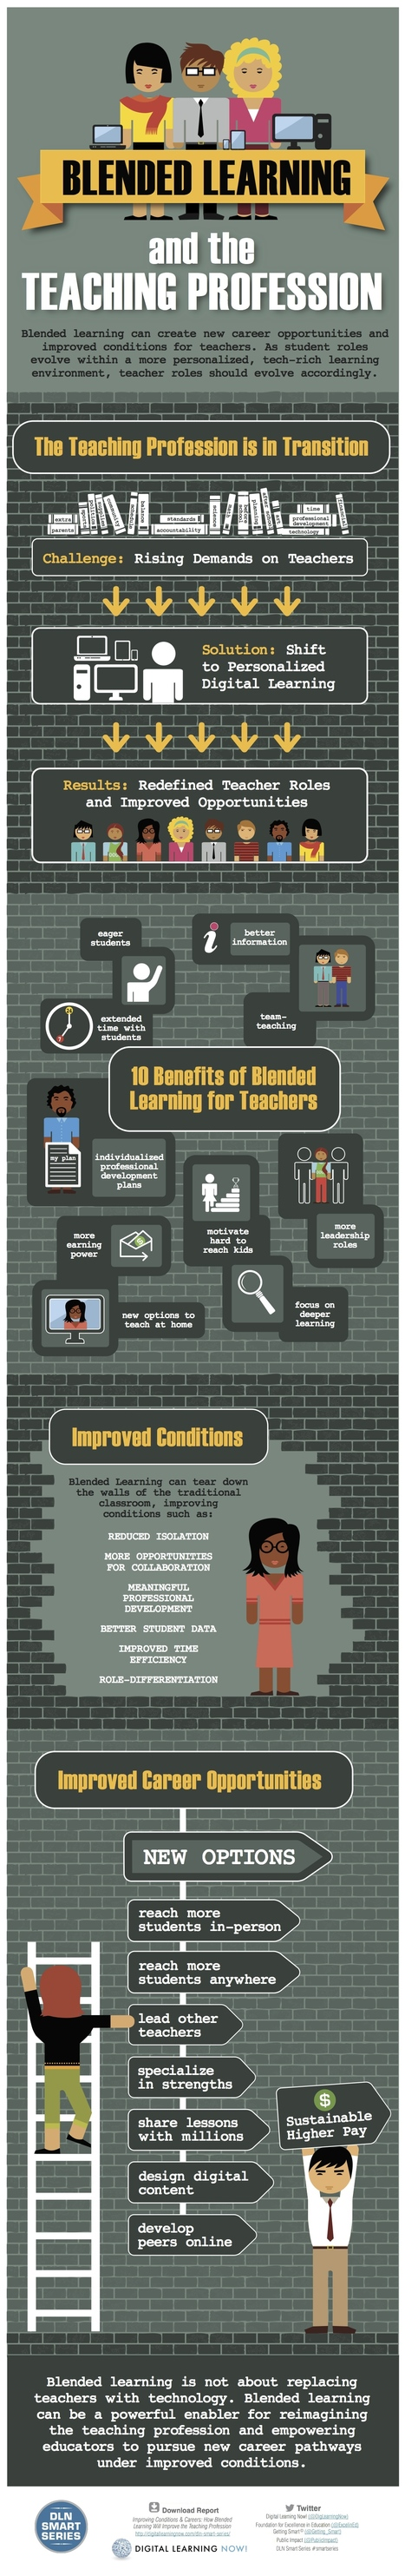 Blended Learning & The Teaching Profession [Infographic] | LilianaM | Scoop.it